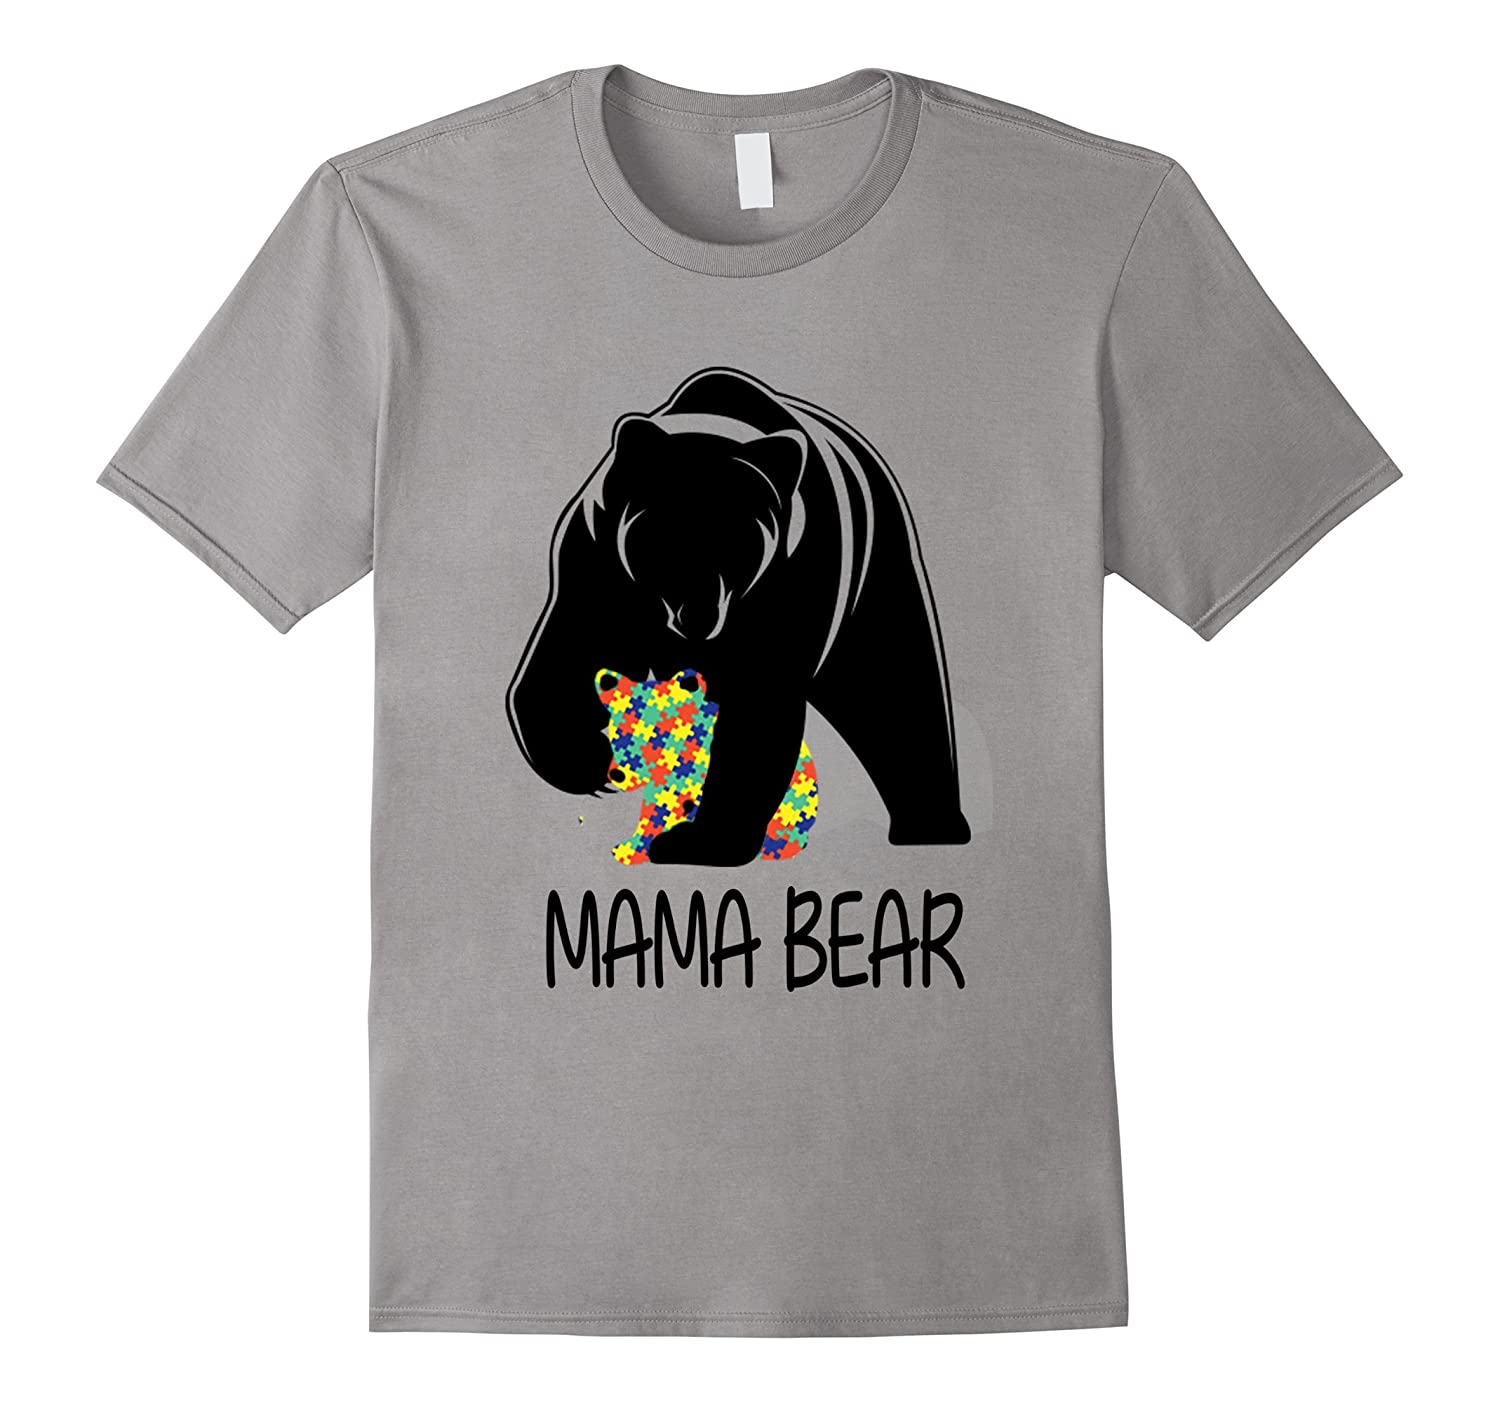 2017 Autism Awareness Mom - MamaBear TShirt-CD